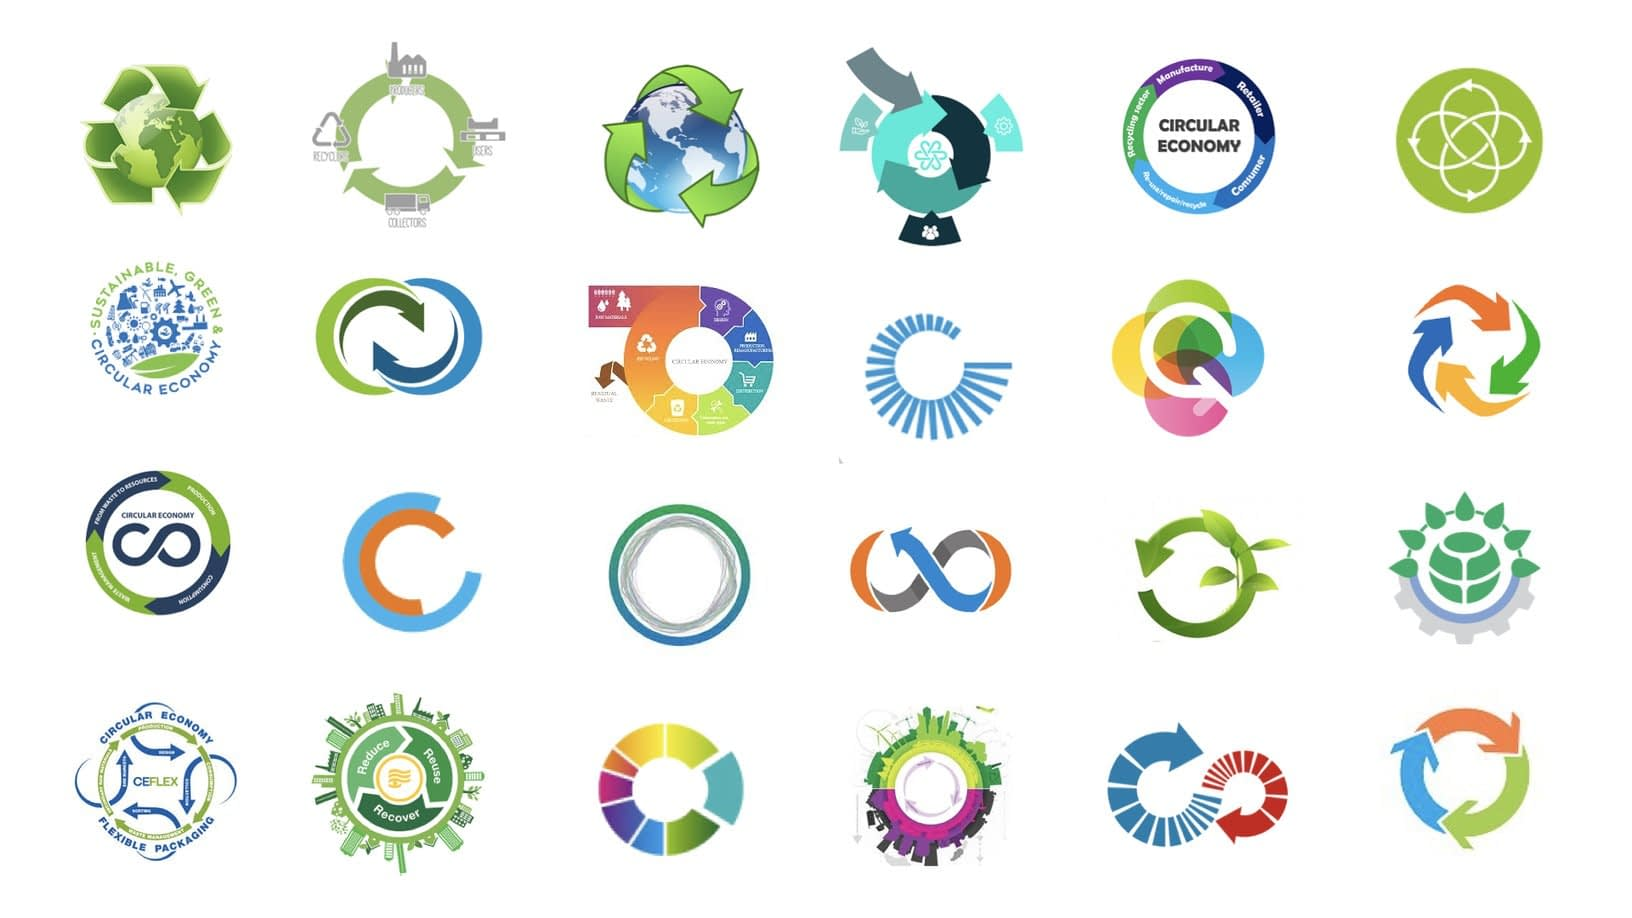 , From the birth of the recycling logo to the call for a circular economy, The Circular Economy